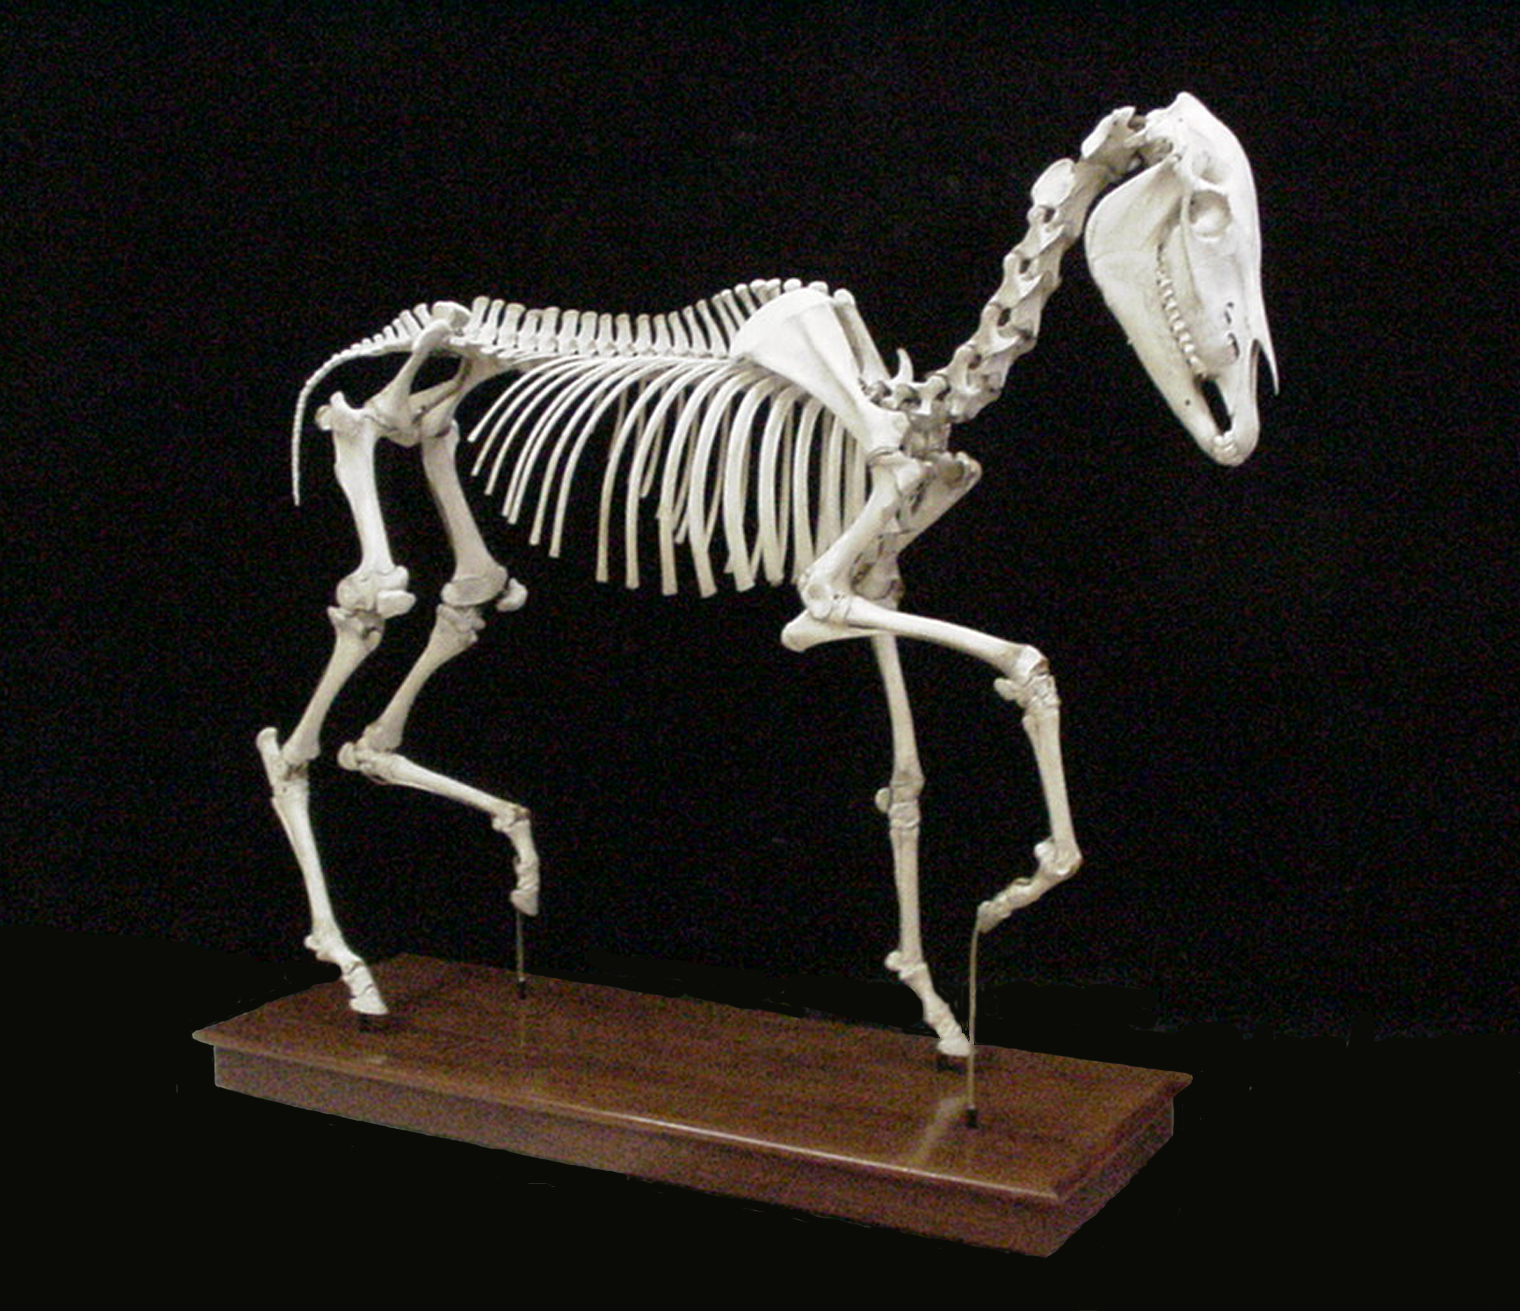 Horse skeleton, mounted